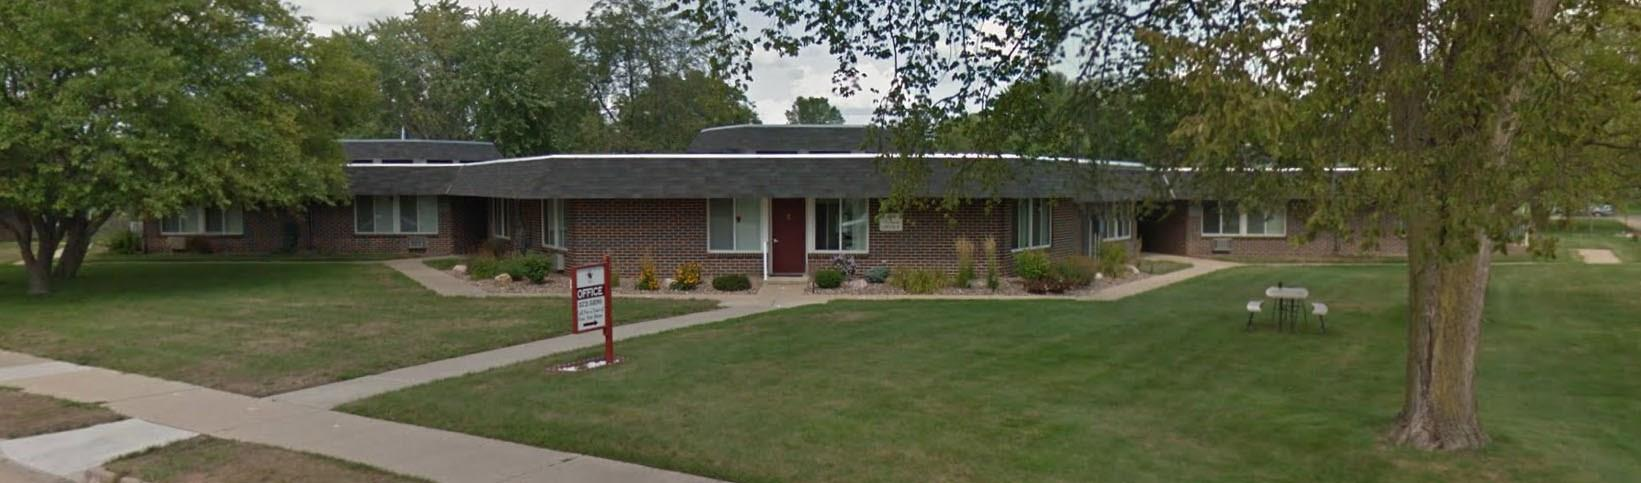 1500 Lincoln Avenue Property Photo - Other, WI real estate listing